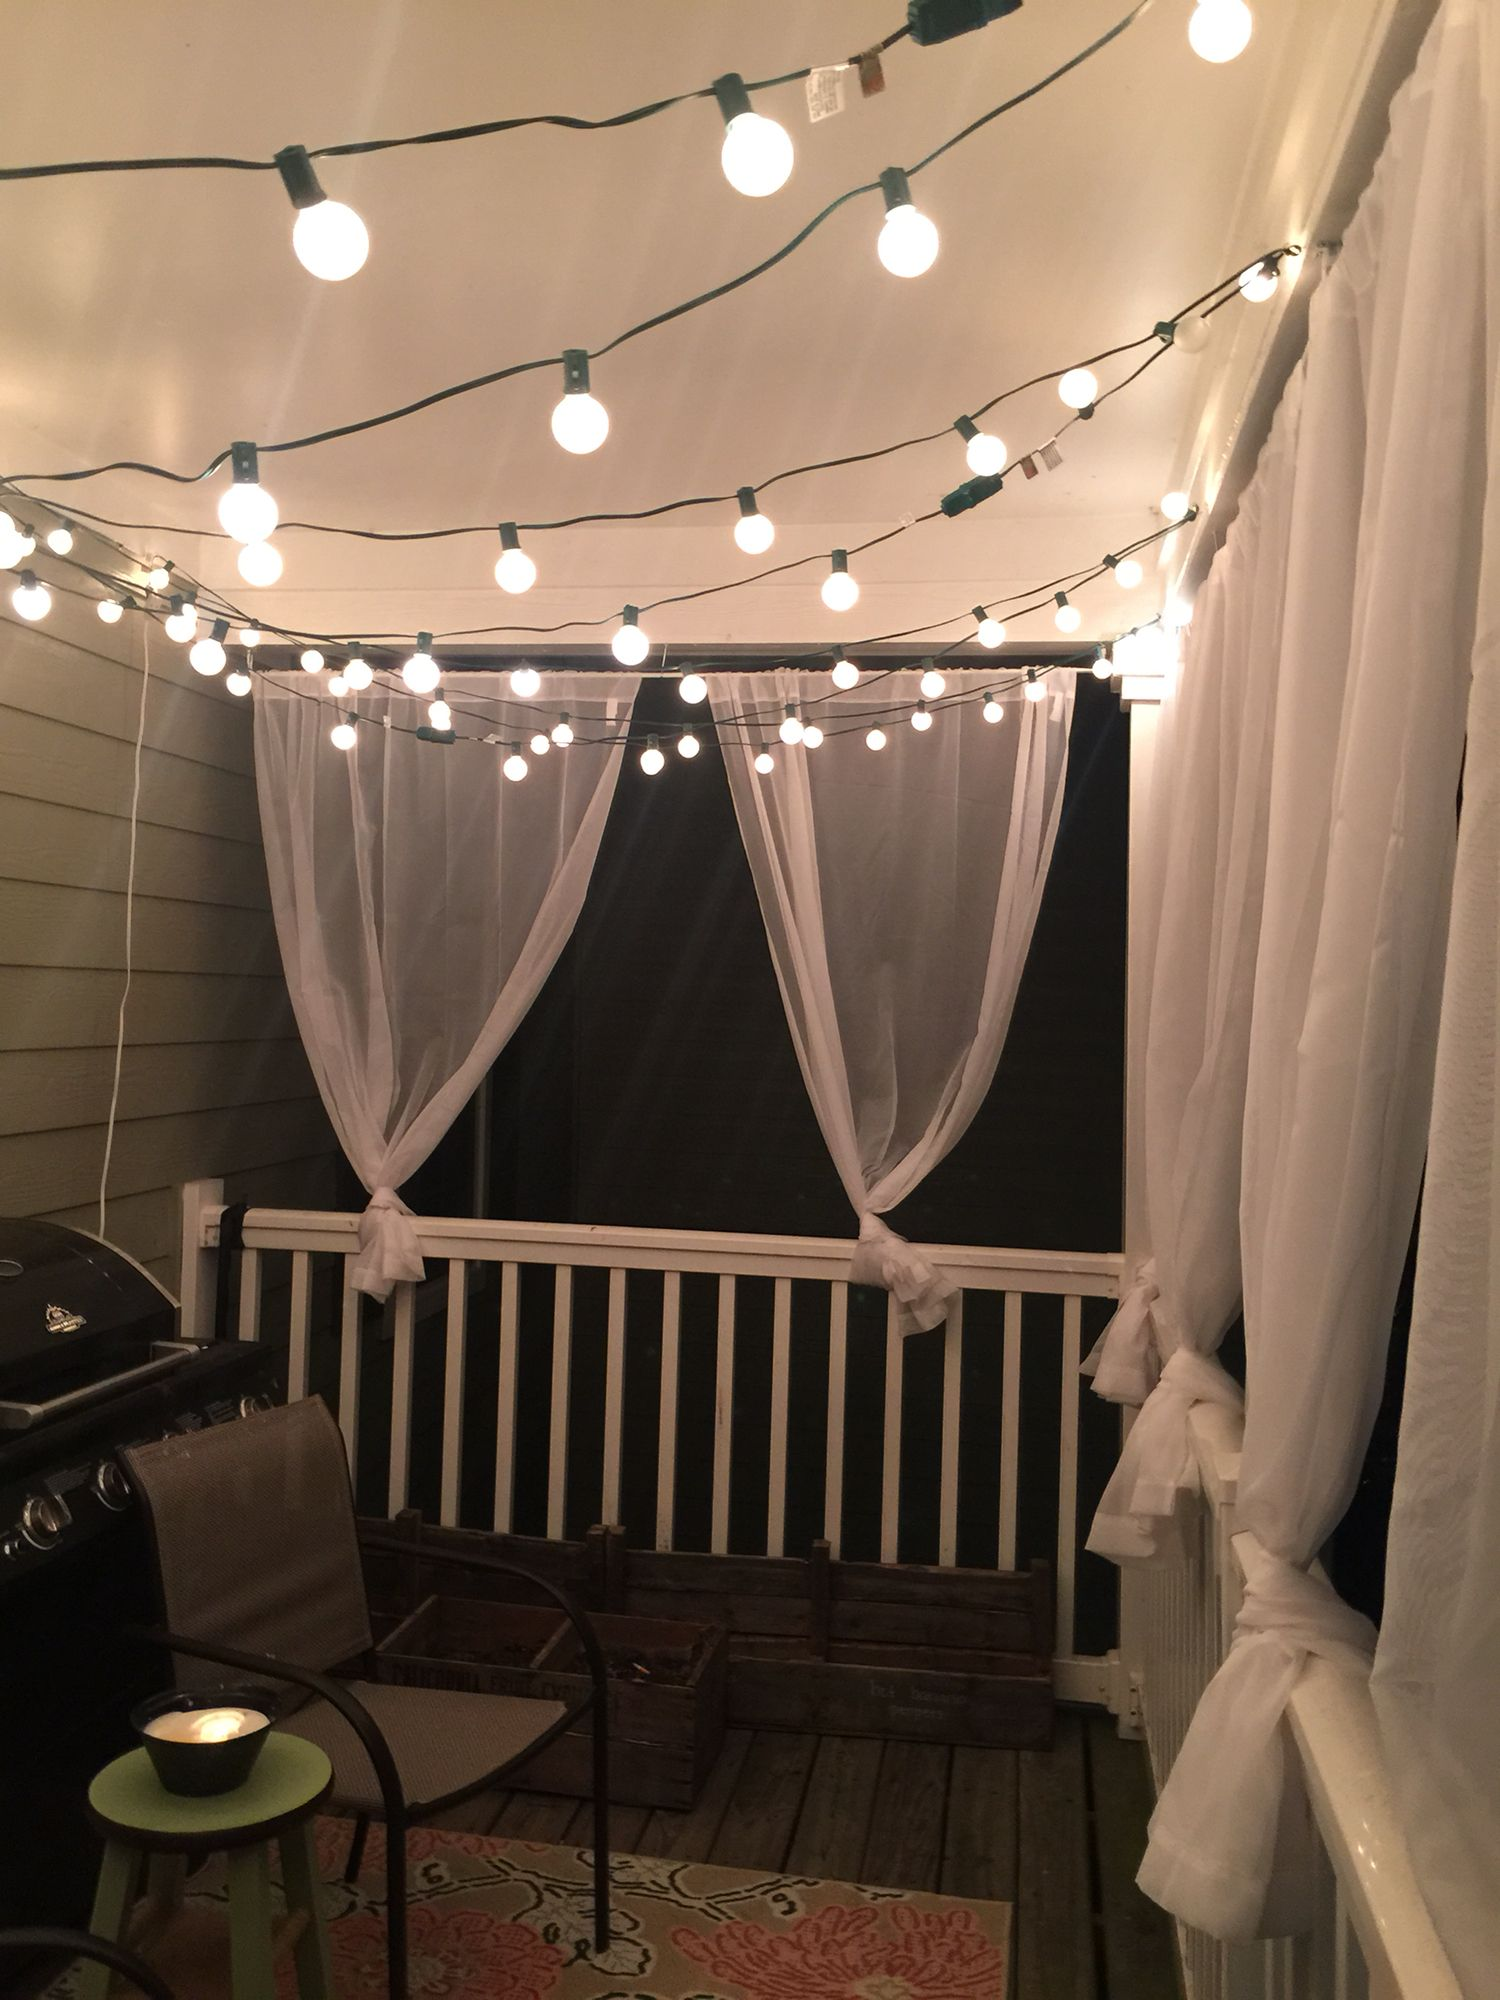 Curtain For Balcony: My DIY Balcony Makeover On A Budget!